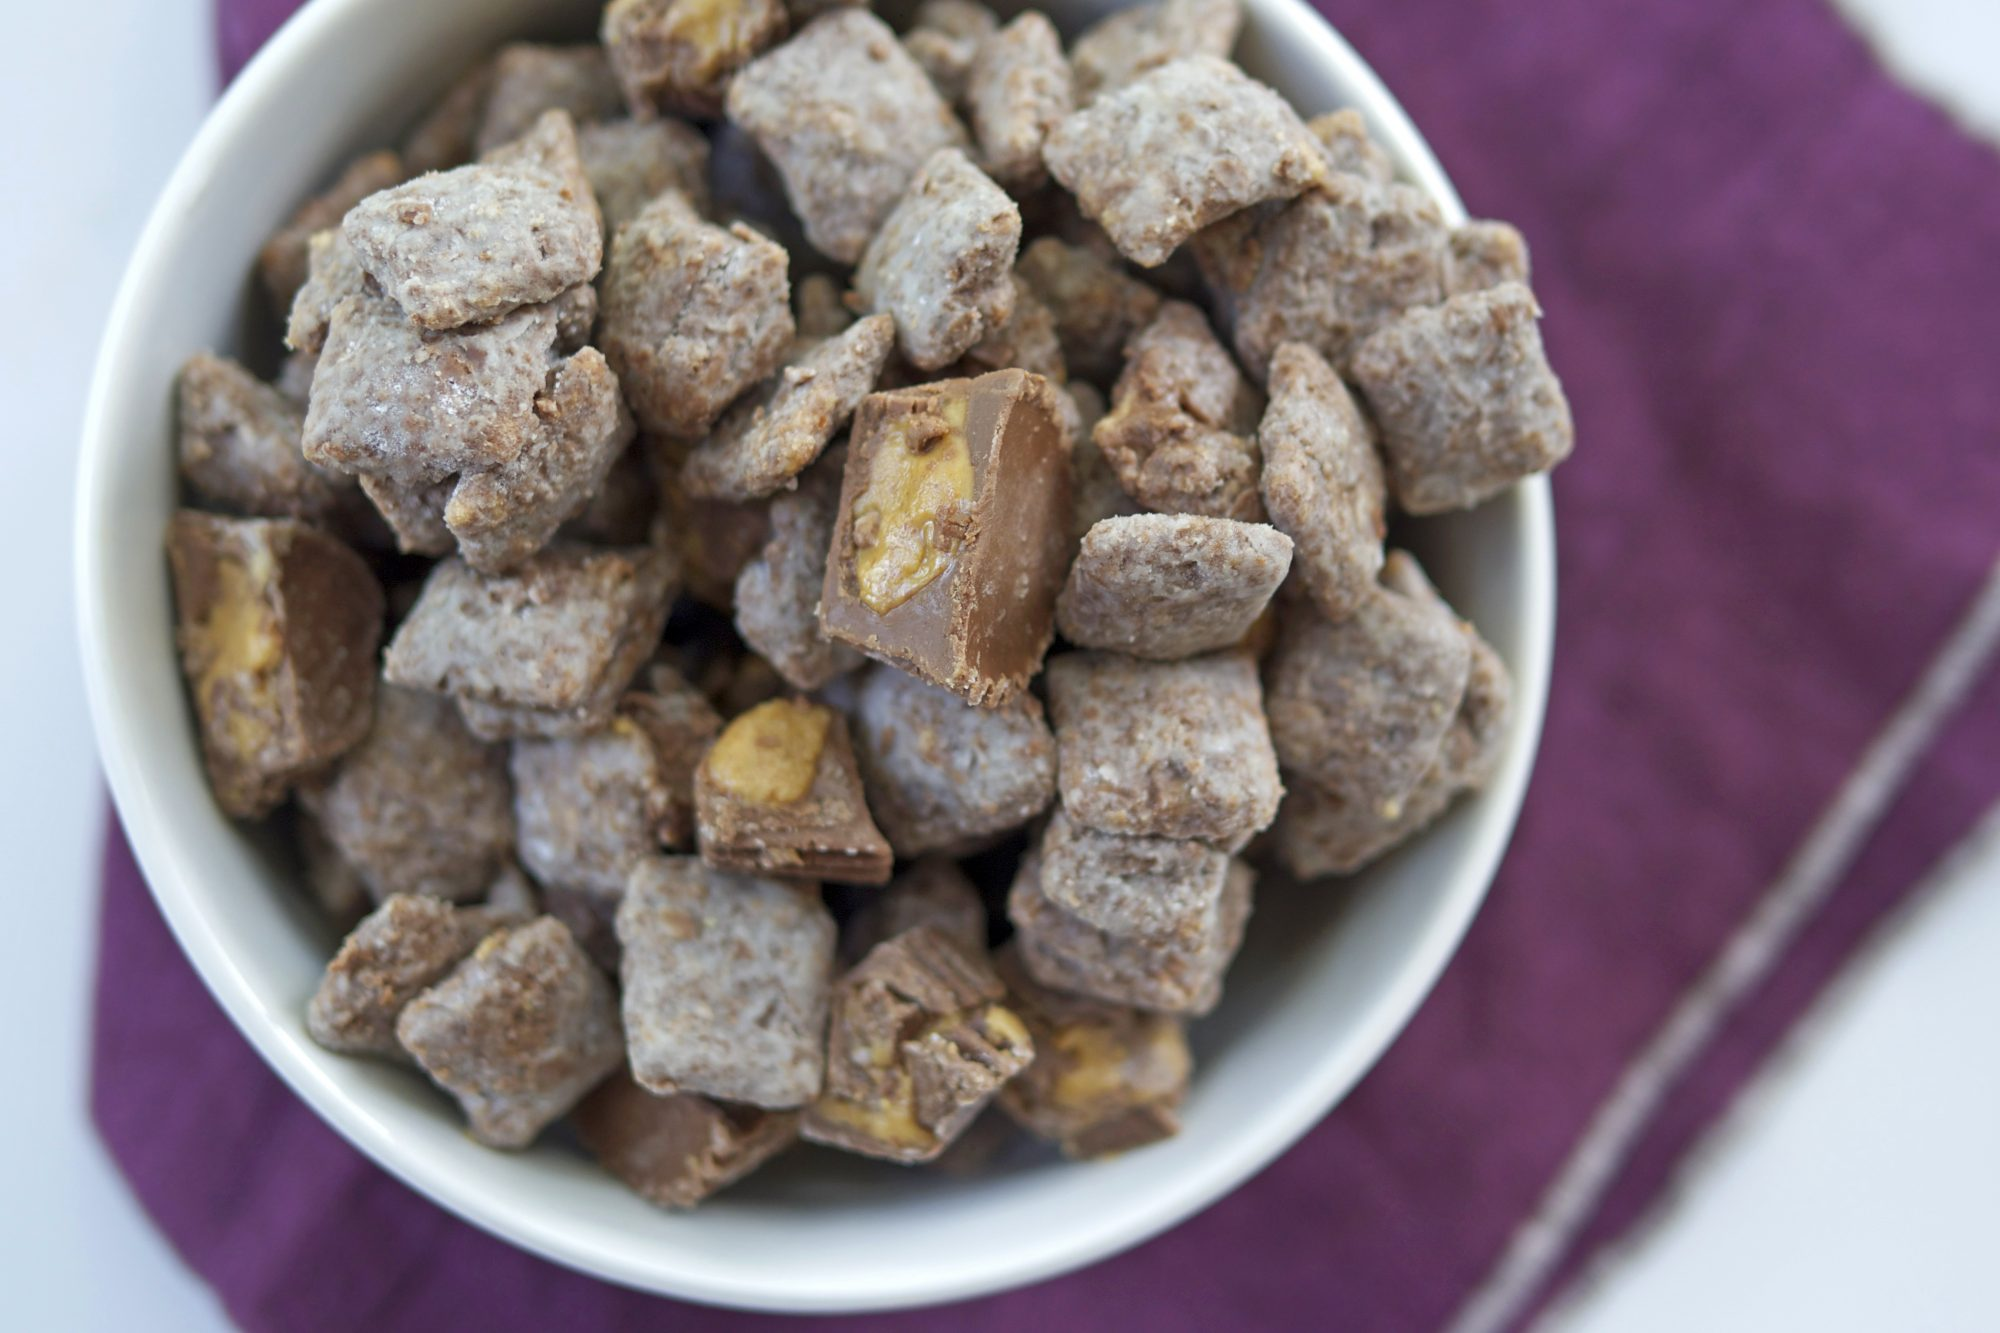 Triple-Chocolate Peanut Butter Cup Puppy Chow